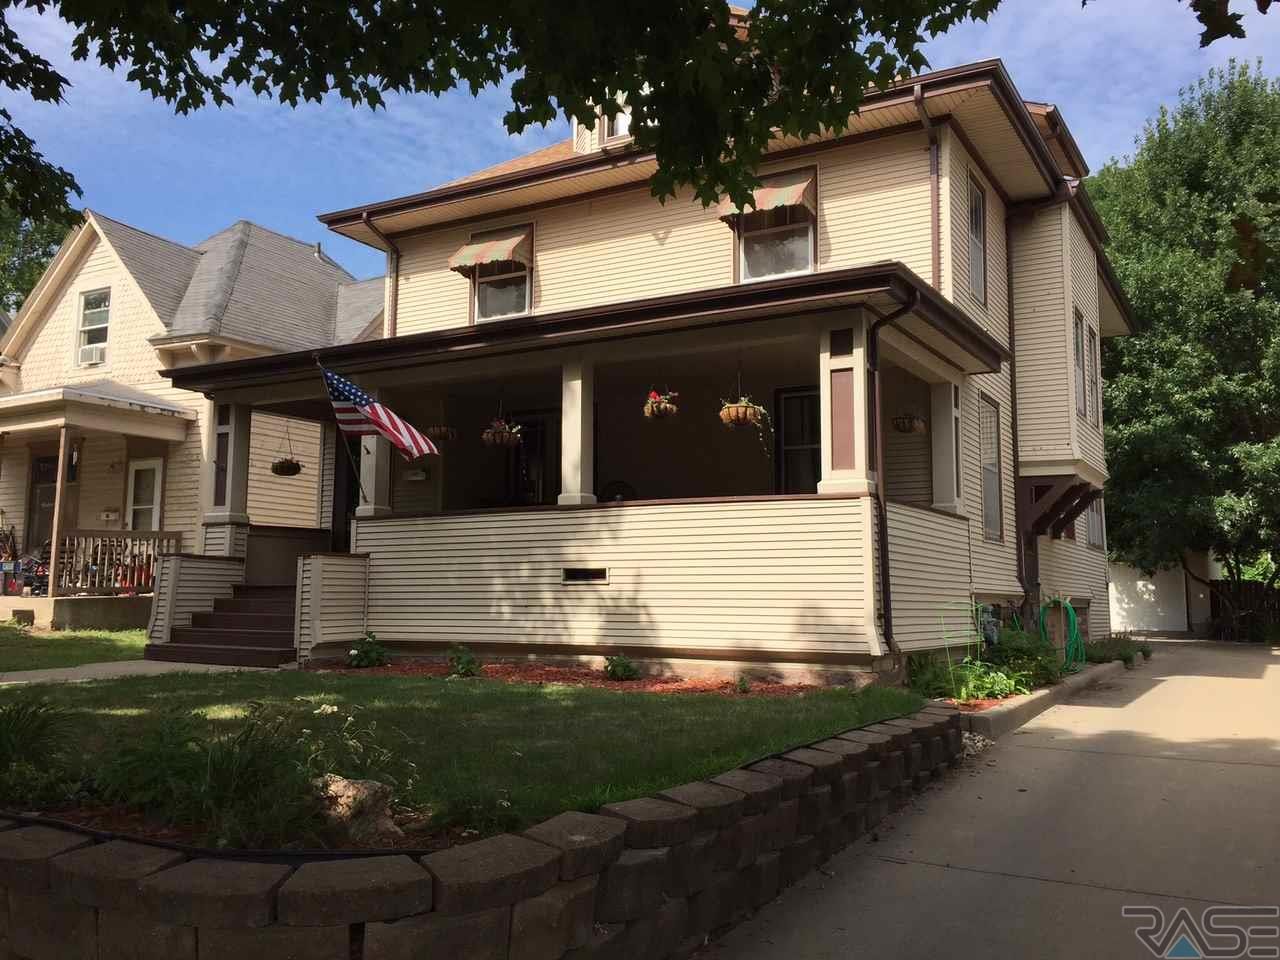 109 S Walts Ave, SIOUX FALLS